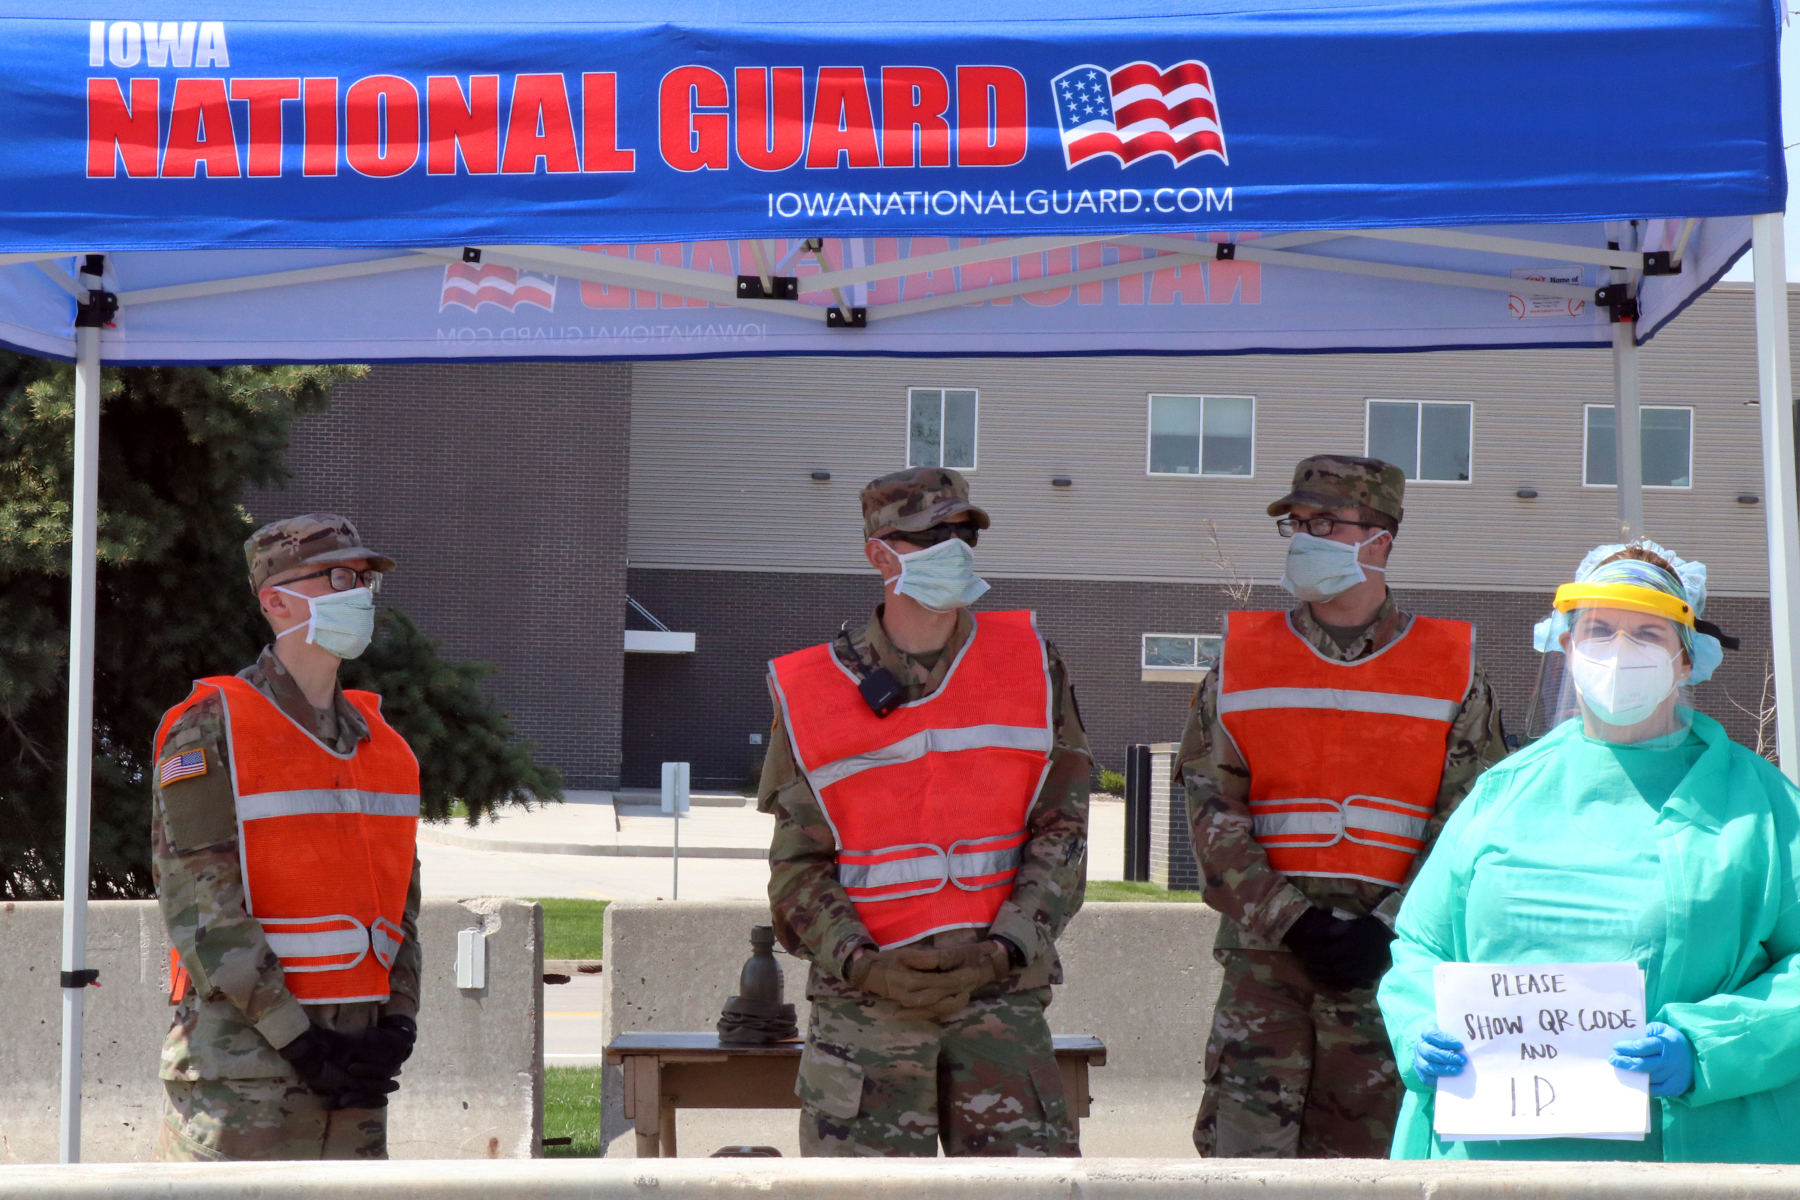 Iowa National Guard Soldiers of the 186th military police company and a local health care professional operate a traffic control point at the COVID-19 testing site at the Iowa Events Center in Des Moines, Iowa, on April 25, 2020. Photo by Cpl. Samantha Hircock